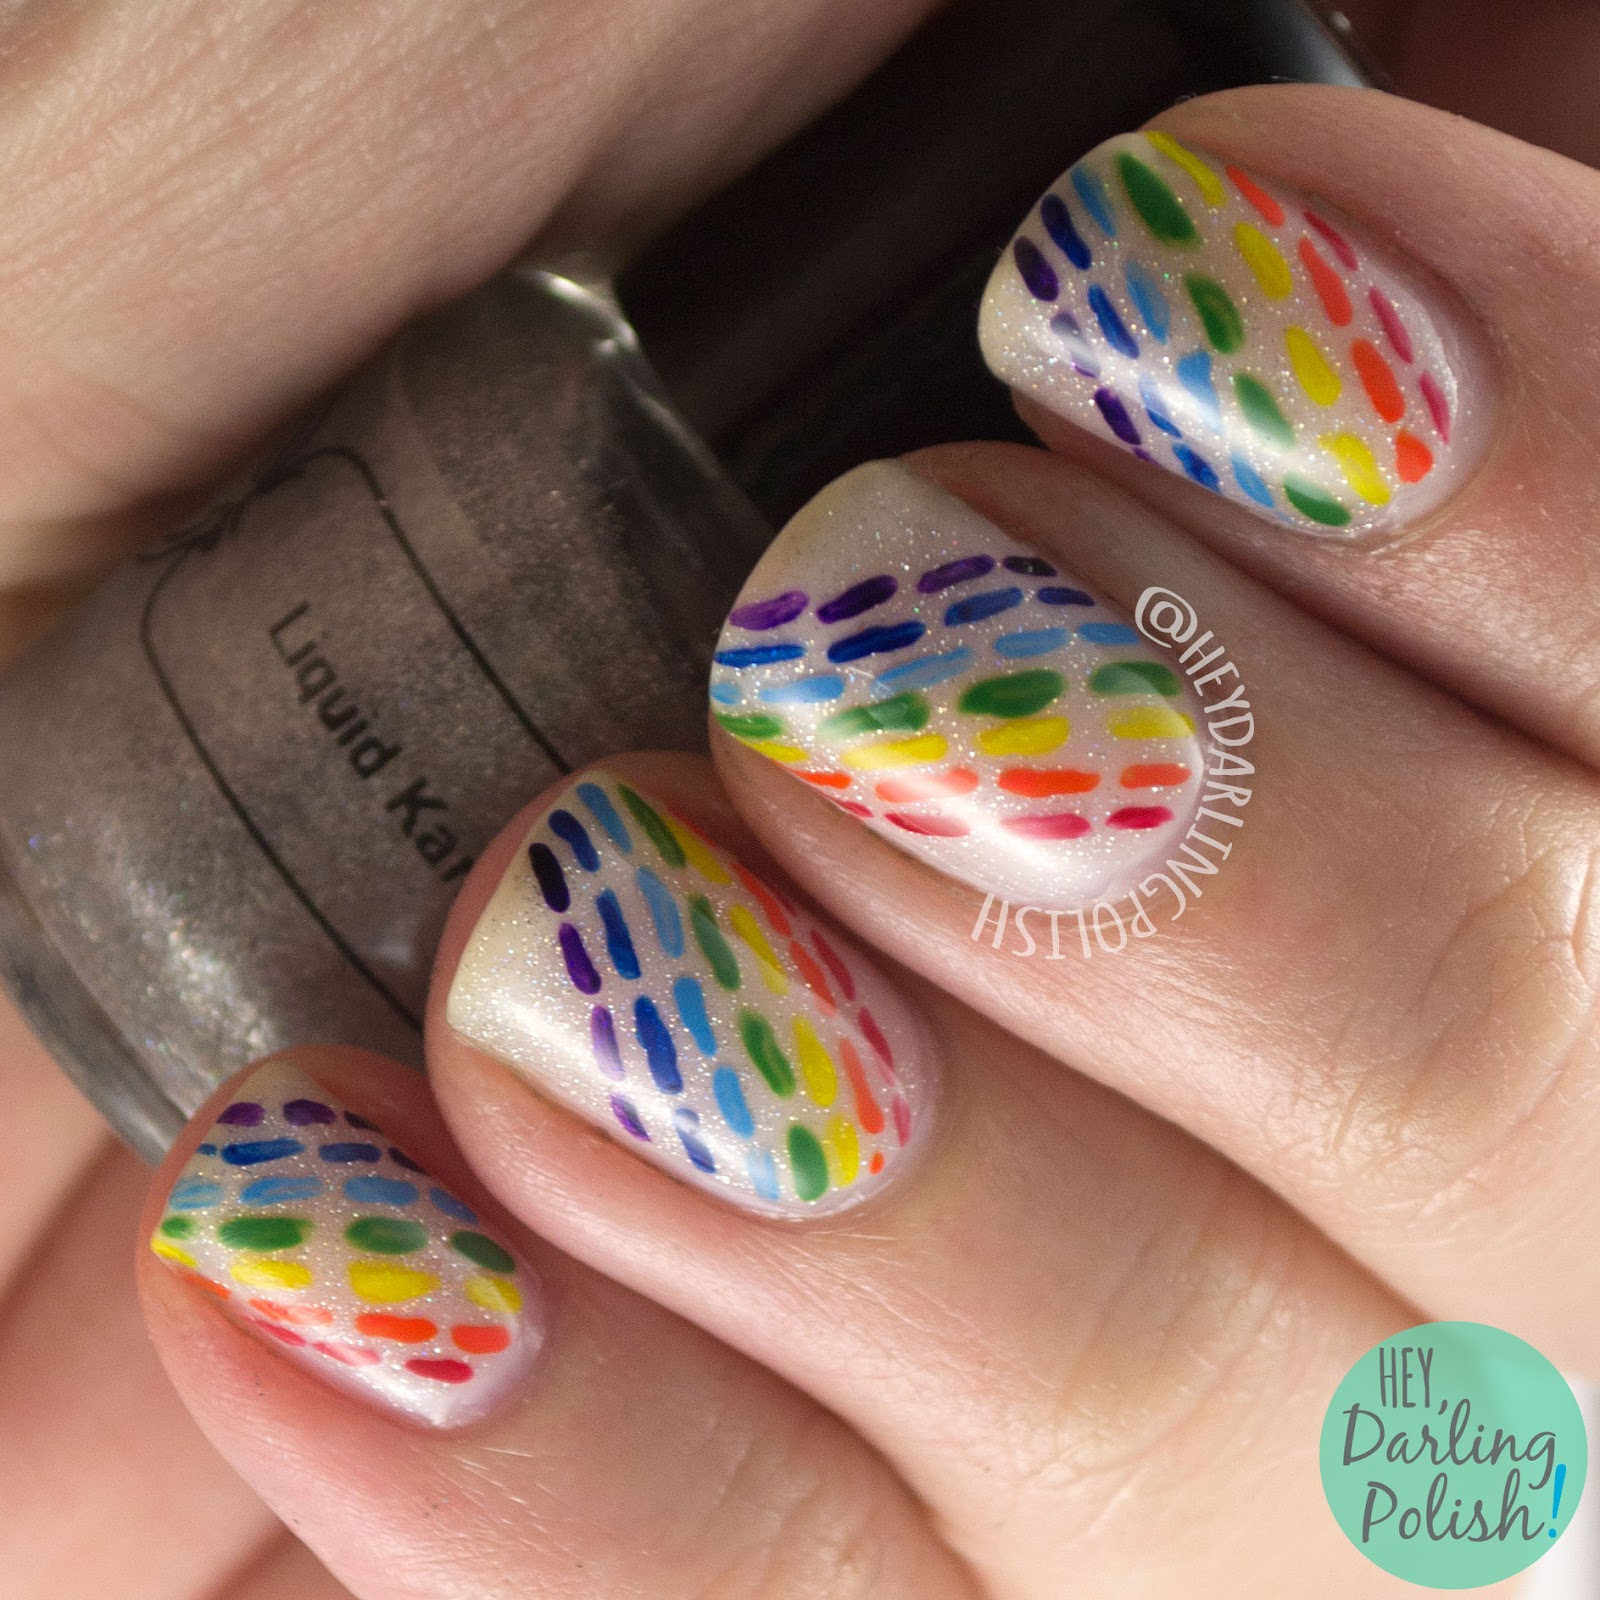 nails, nail art, nail polish, hey darling polish, rainbow, lines, dashes, 2015 cnt 31 day challenge